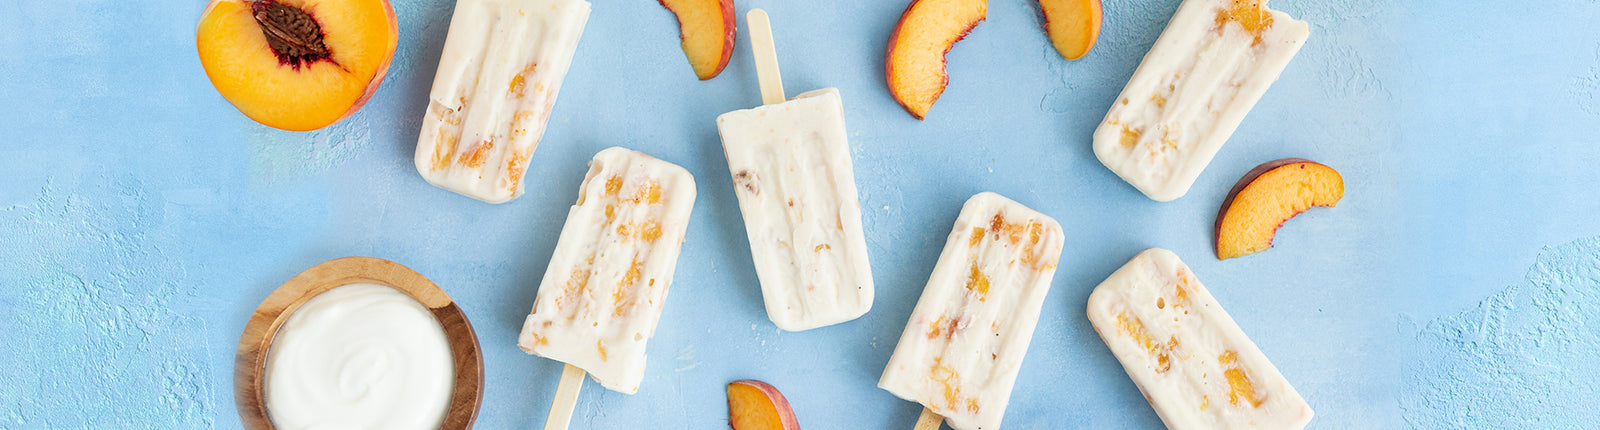 Peaches and Cream Acacia Honey Popsicles